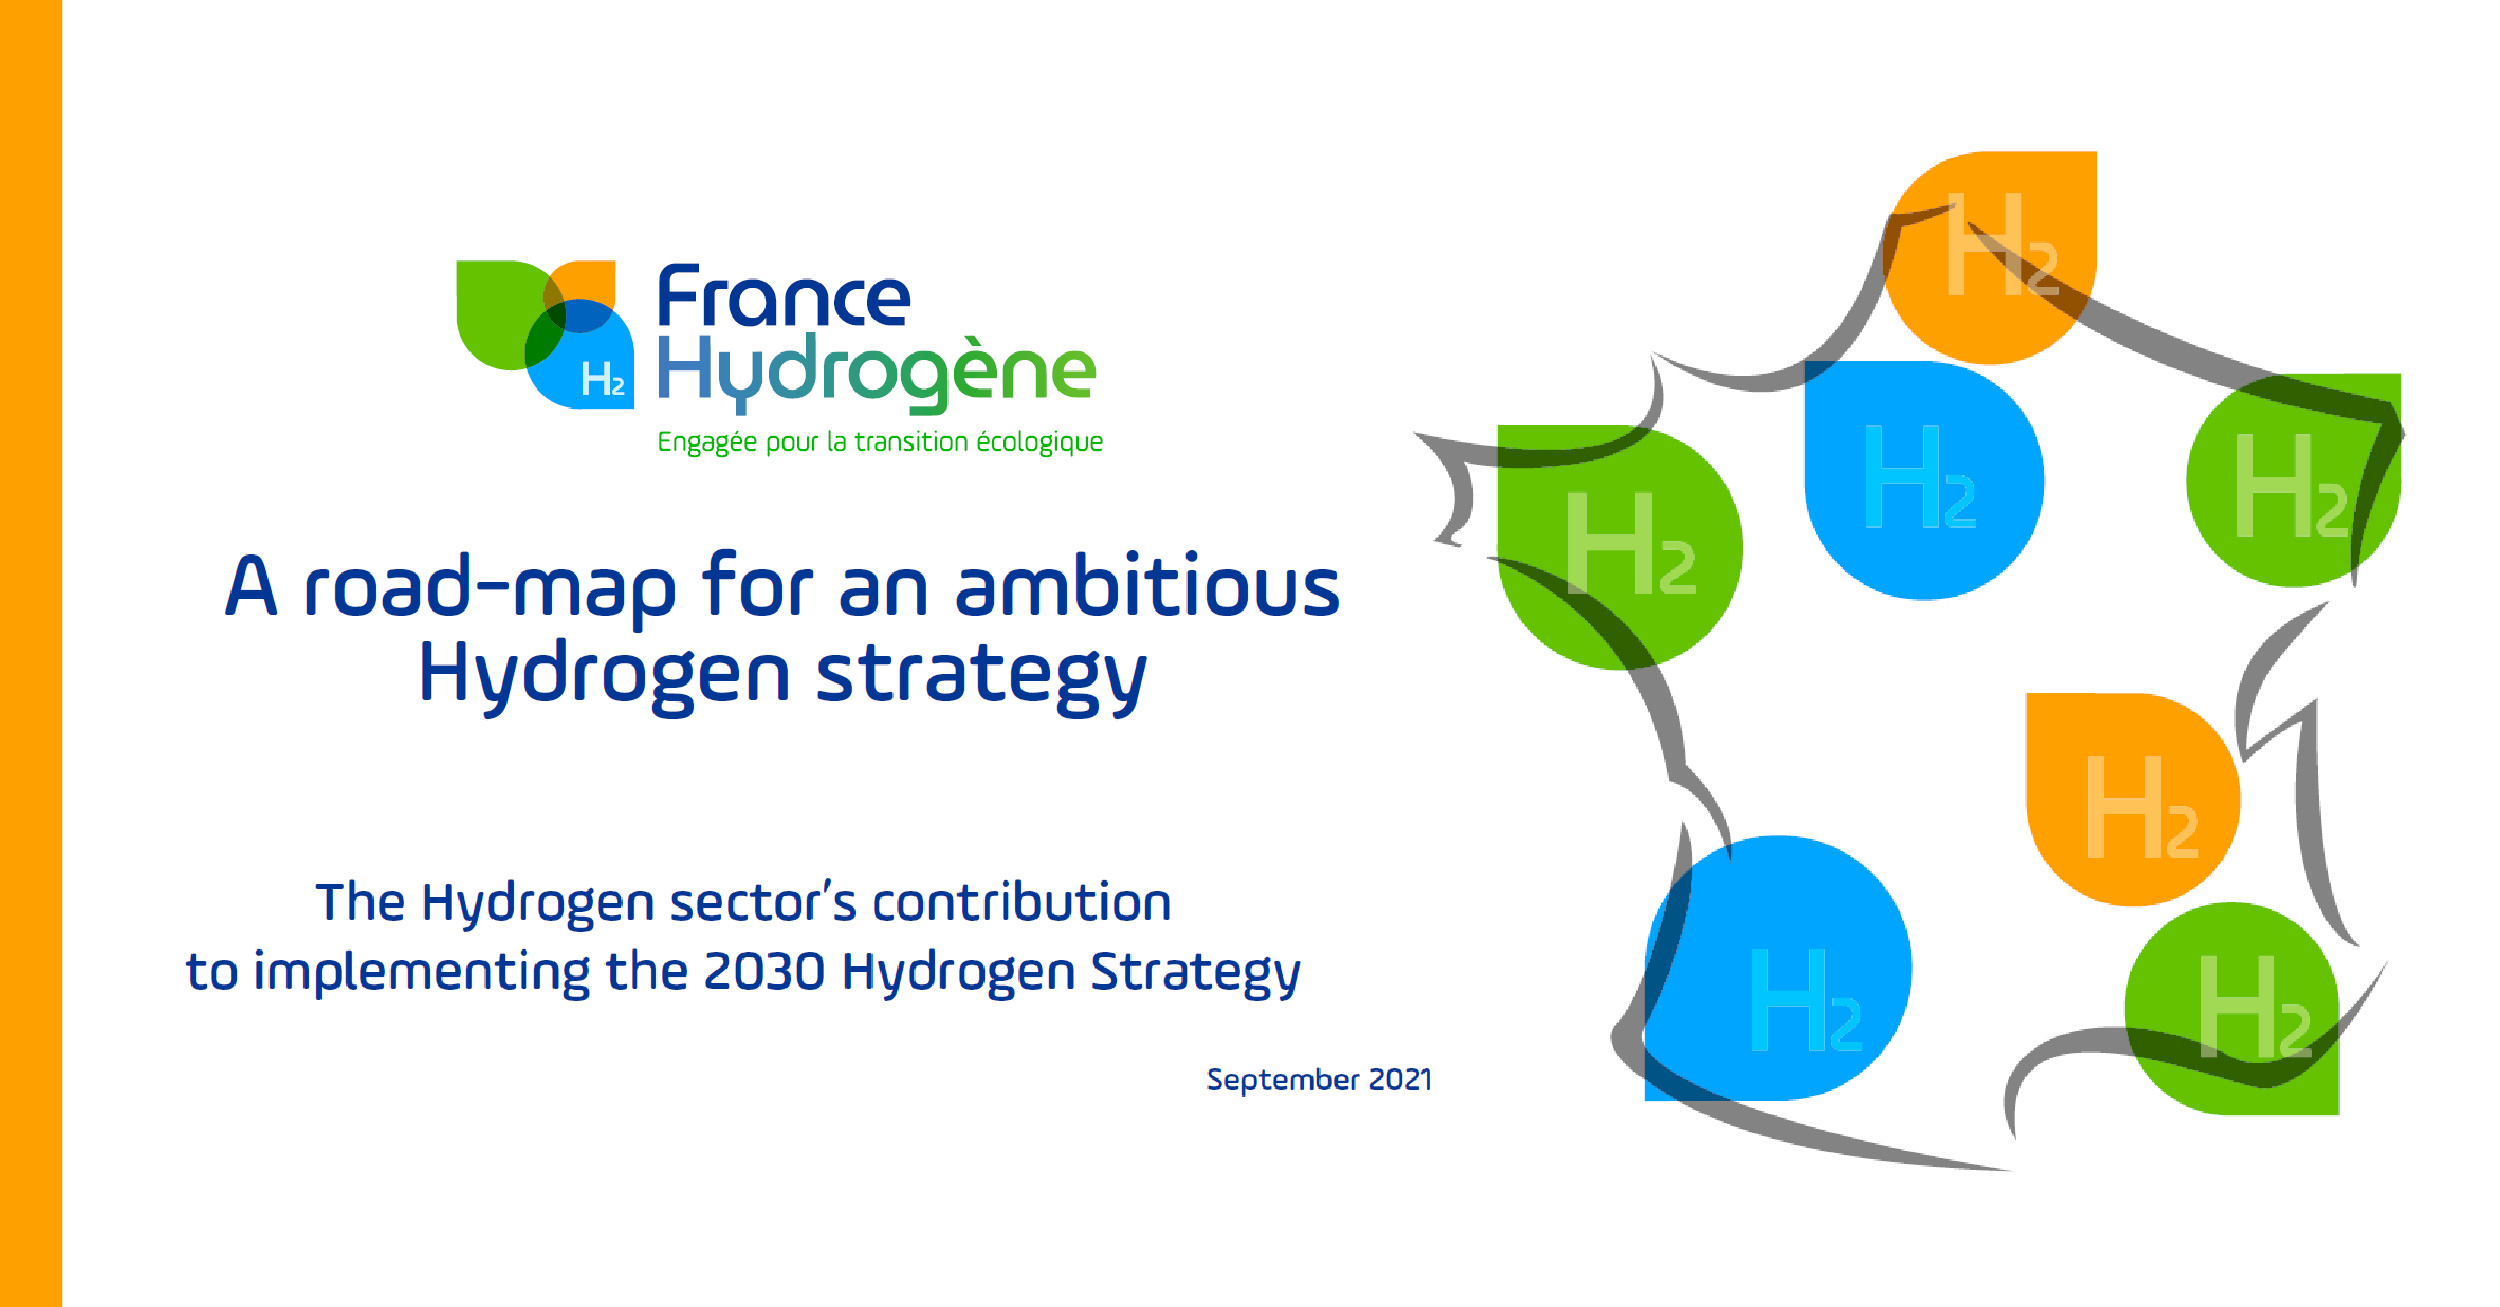 France Sets A New Road-map For Its Hydrogen Strategy